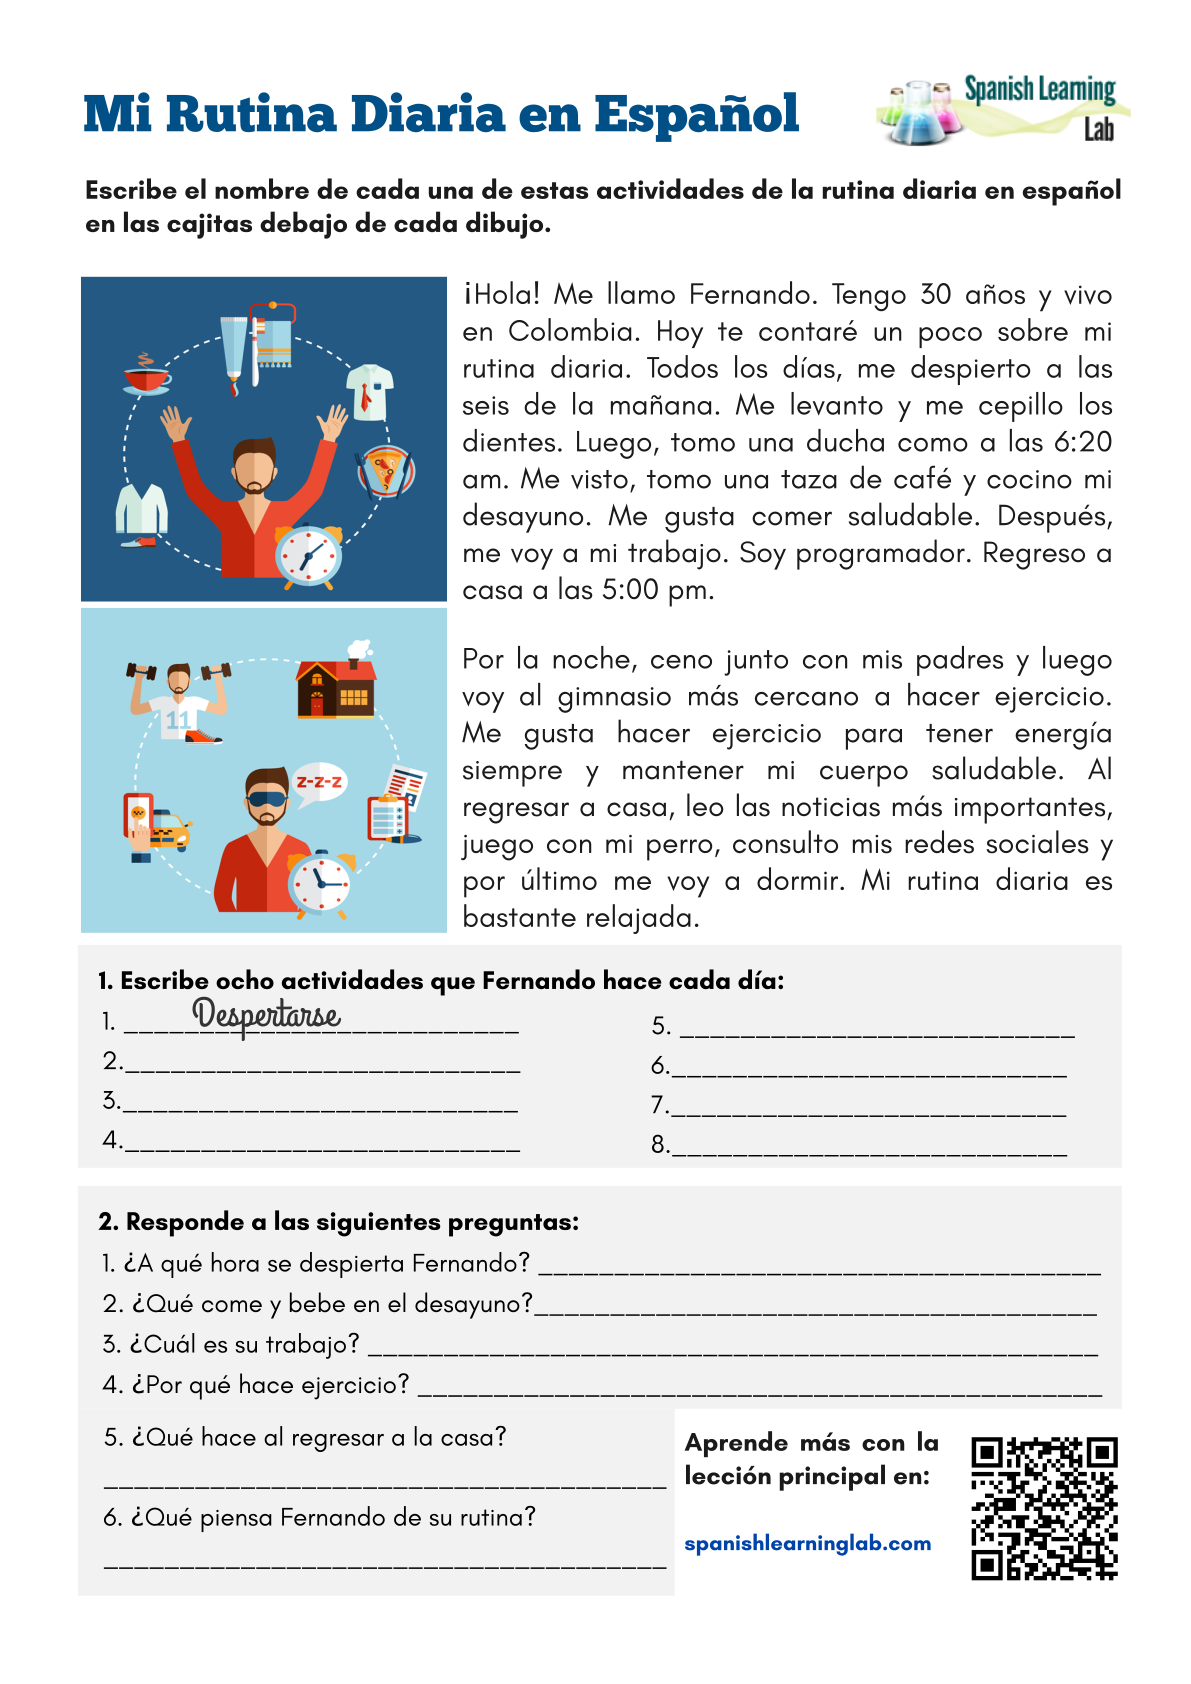 We Have Designed This Worksheet To Help You Practice The